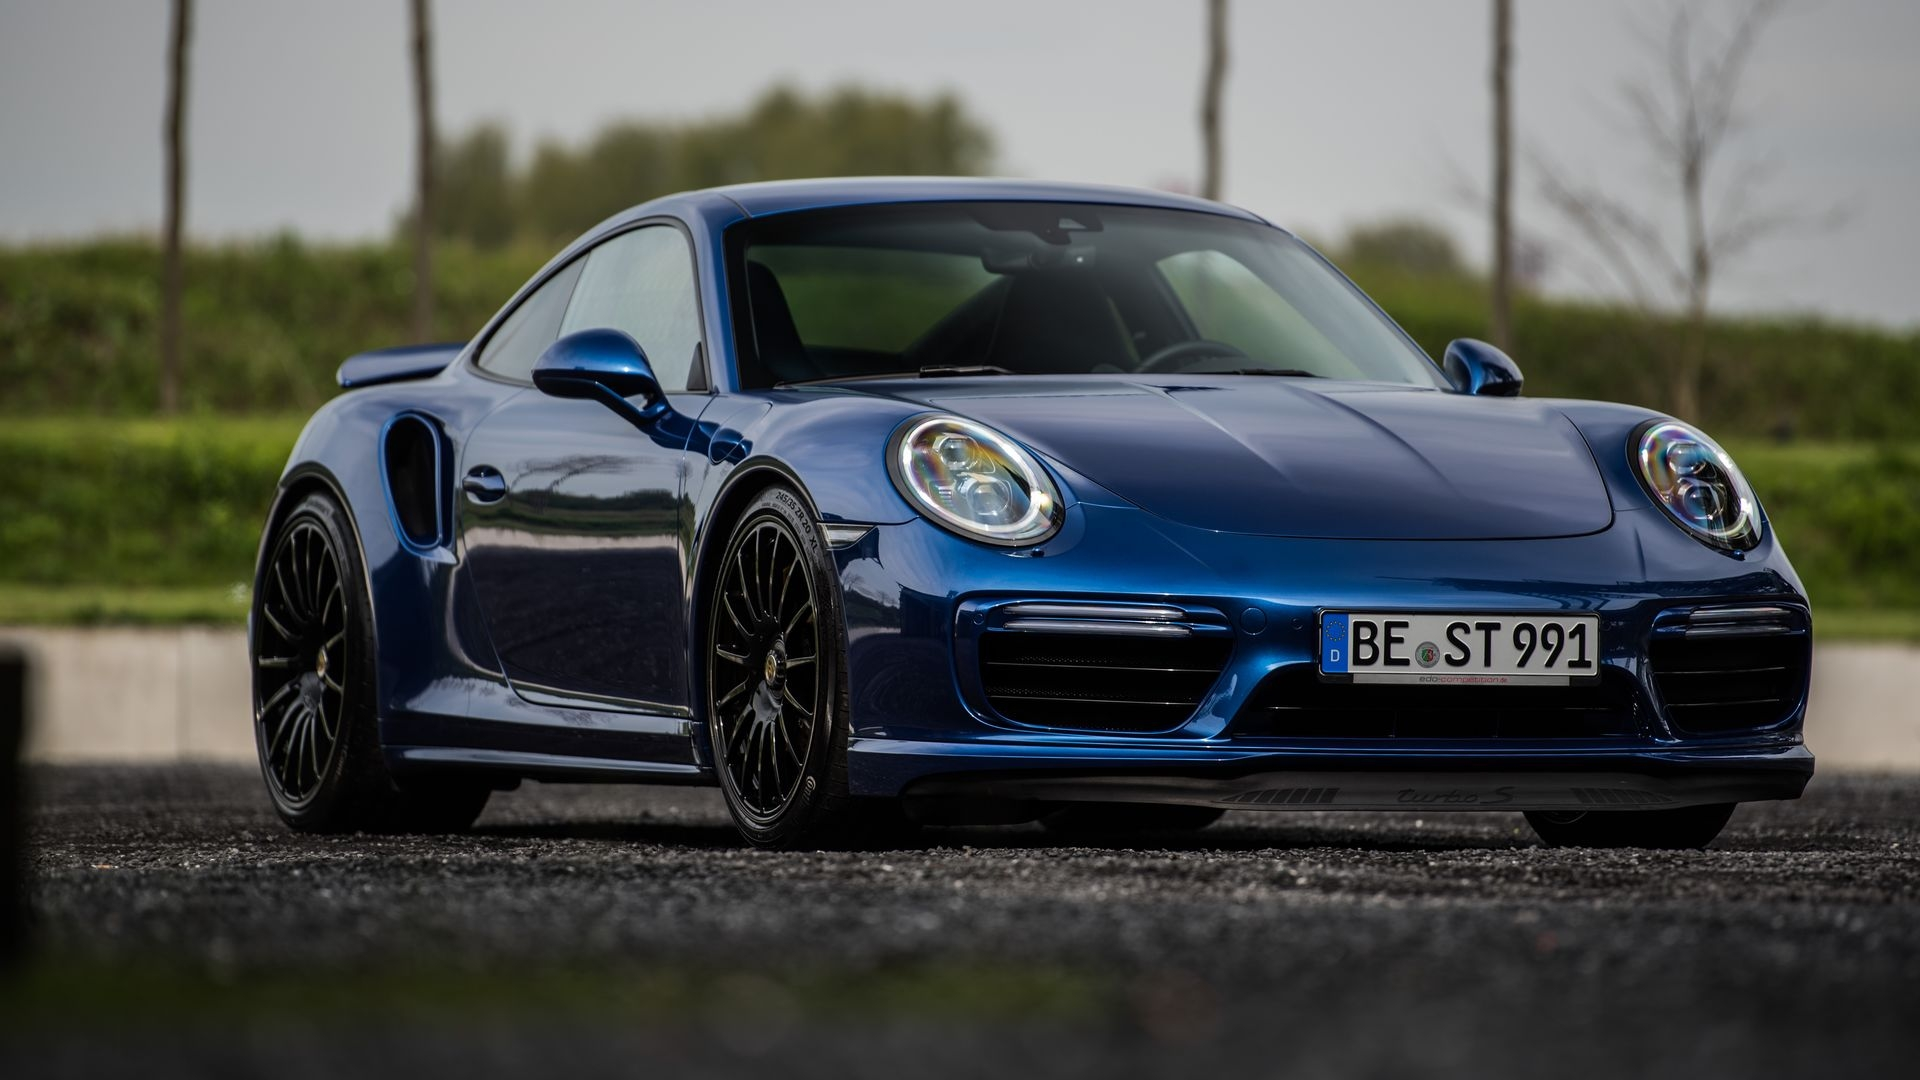 2017 porsche 911 turbo s blue arrow by edo competition review gallery top speed. Black Bedroom Furniture Sets. Home Design Ideas